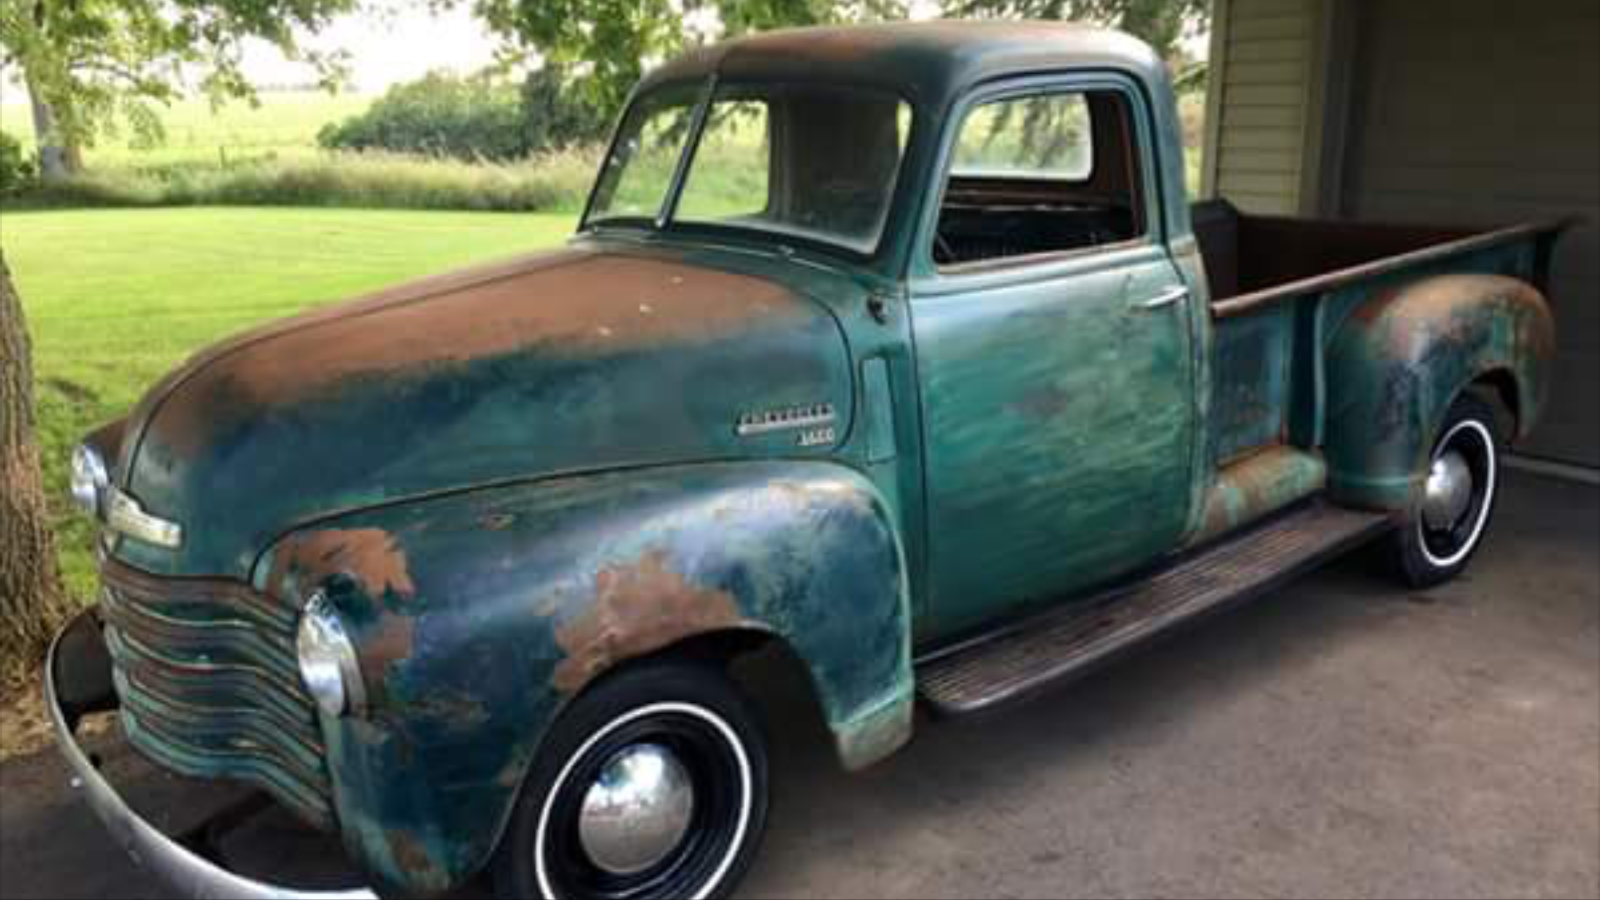 Ebay American Chevrolet 3800 Pick Up Truck Project Uk V5 Awesome Patina Usa Car Cool Trucks Chevrolet Trucks